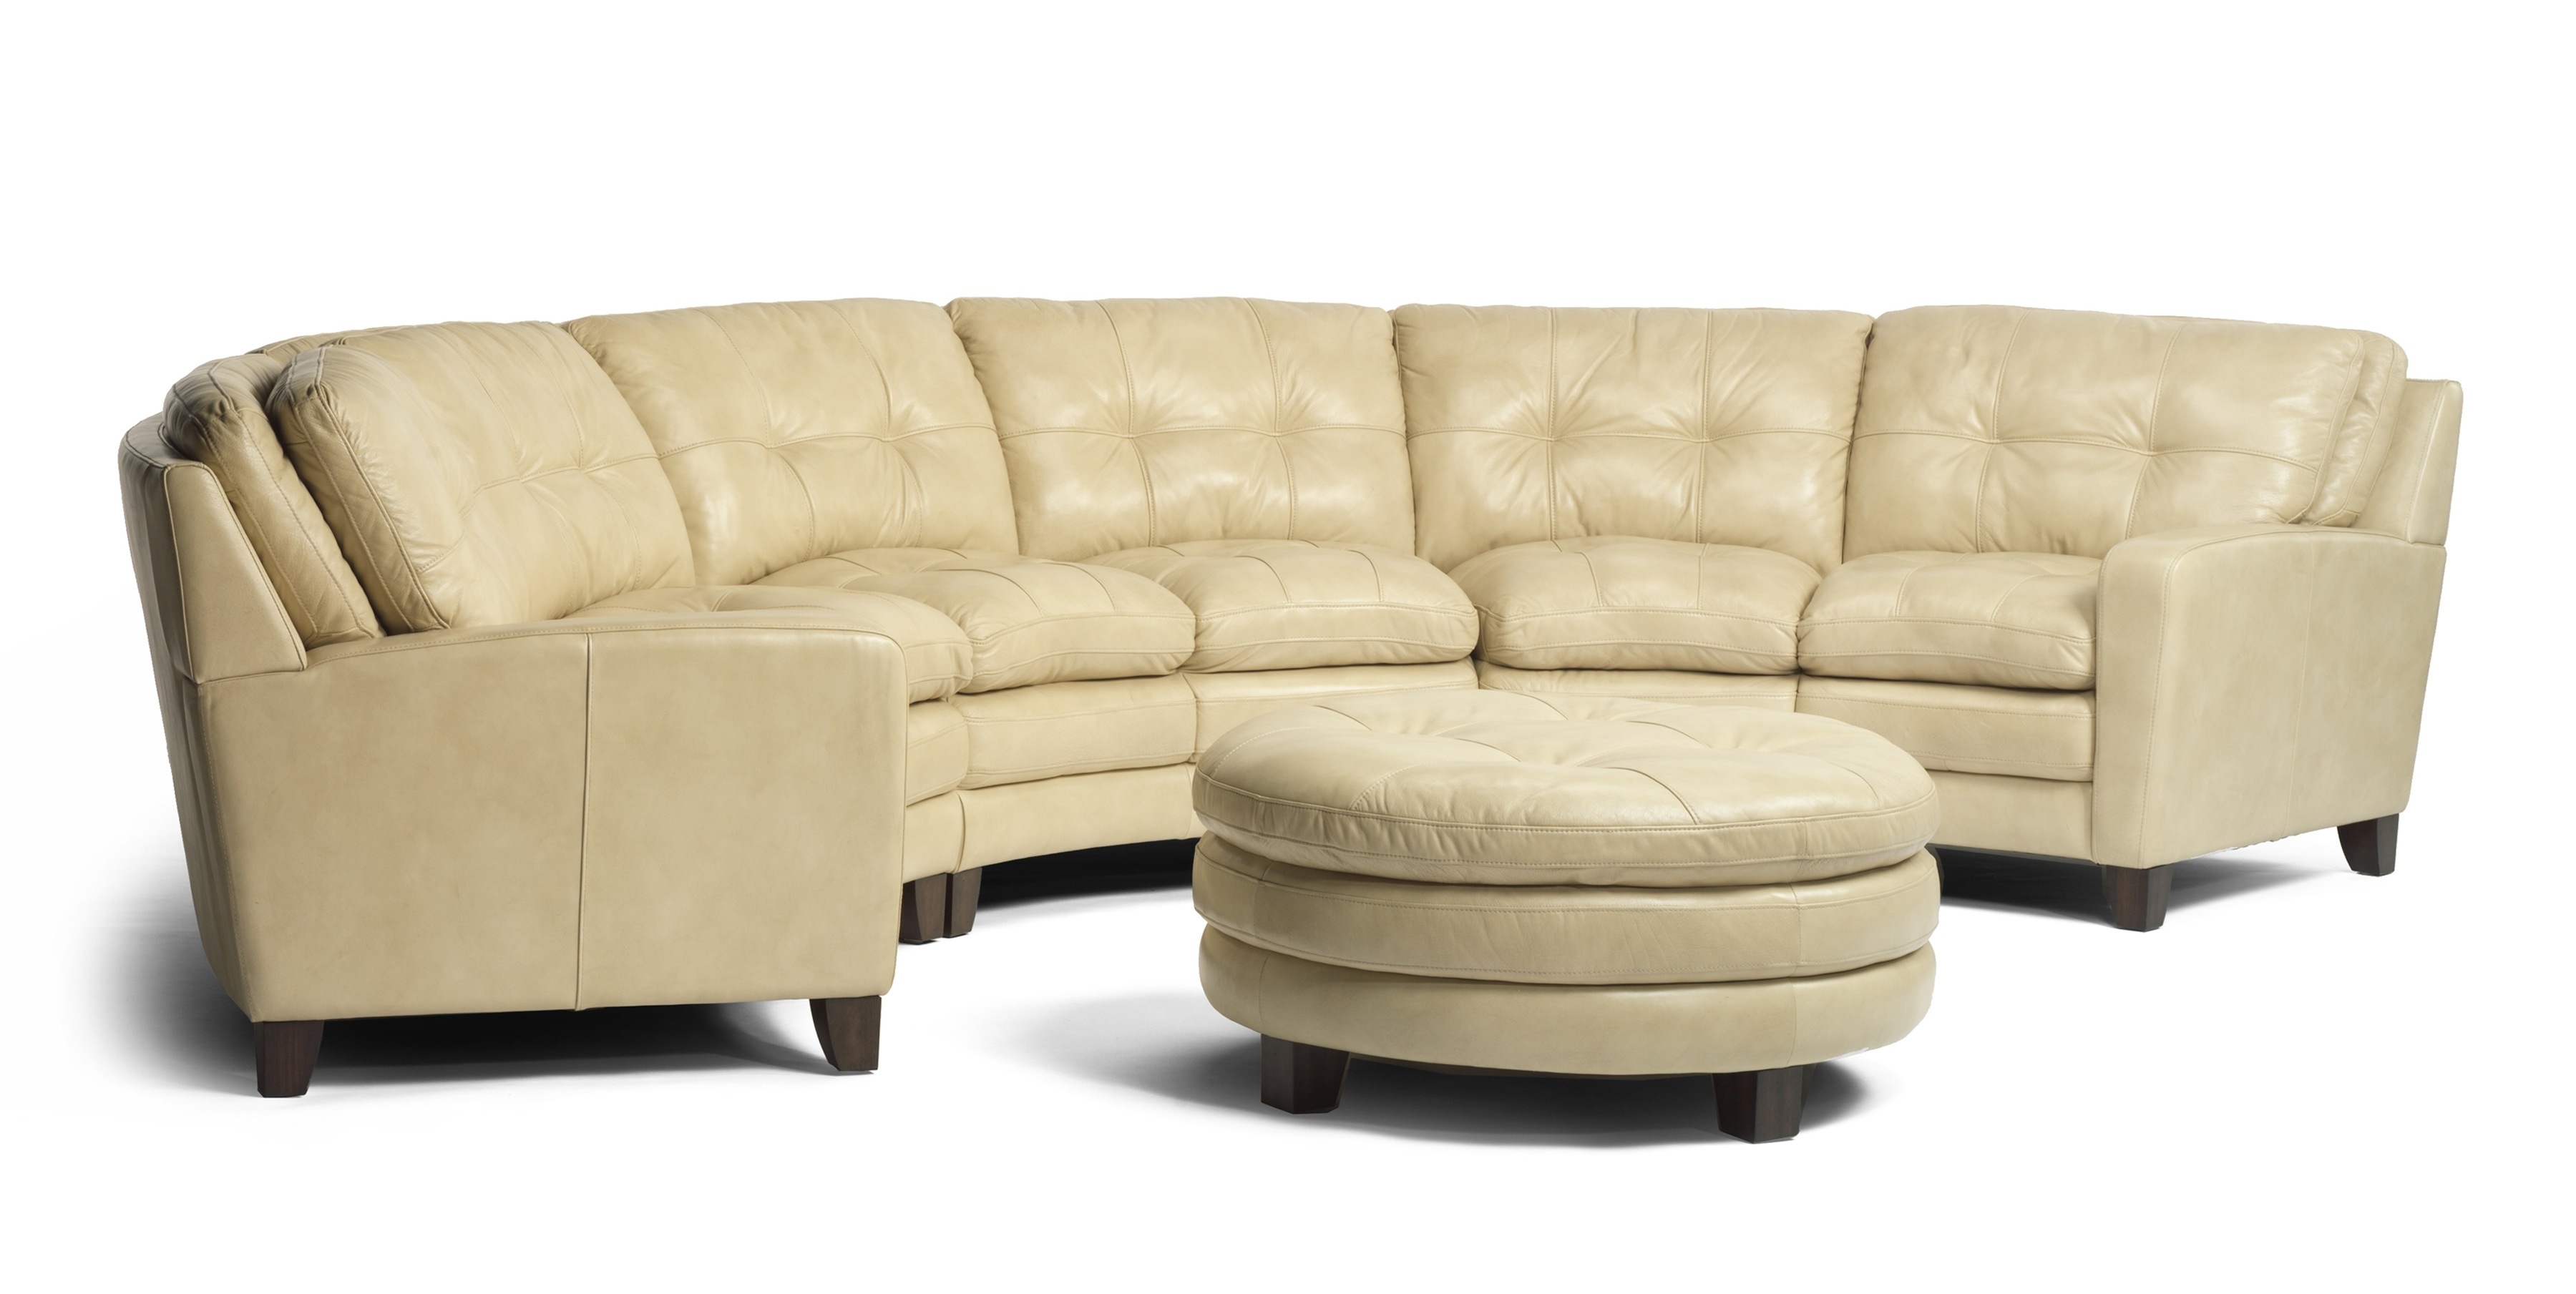 Gorgeous Cream Leather Conversation Sofa Wwwawfurniture Regarding Conversation Sofa Sectional (View 8 of 15)